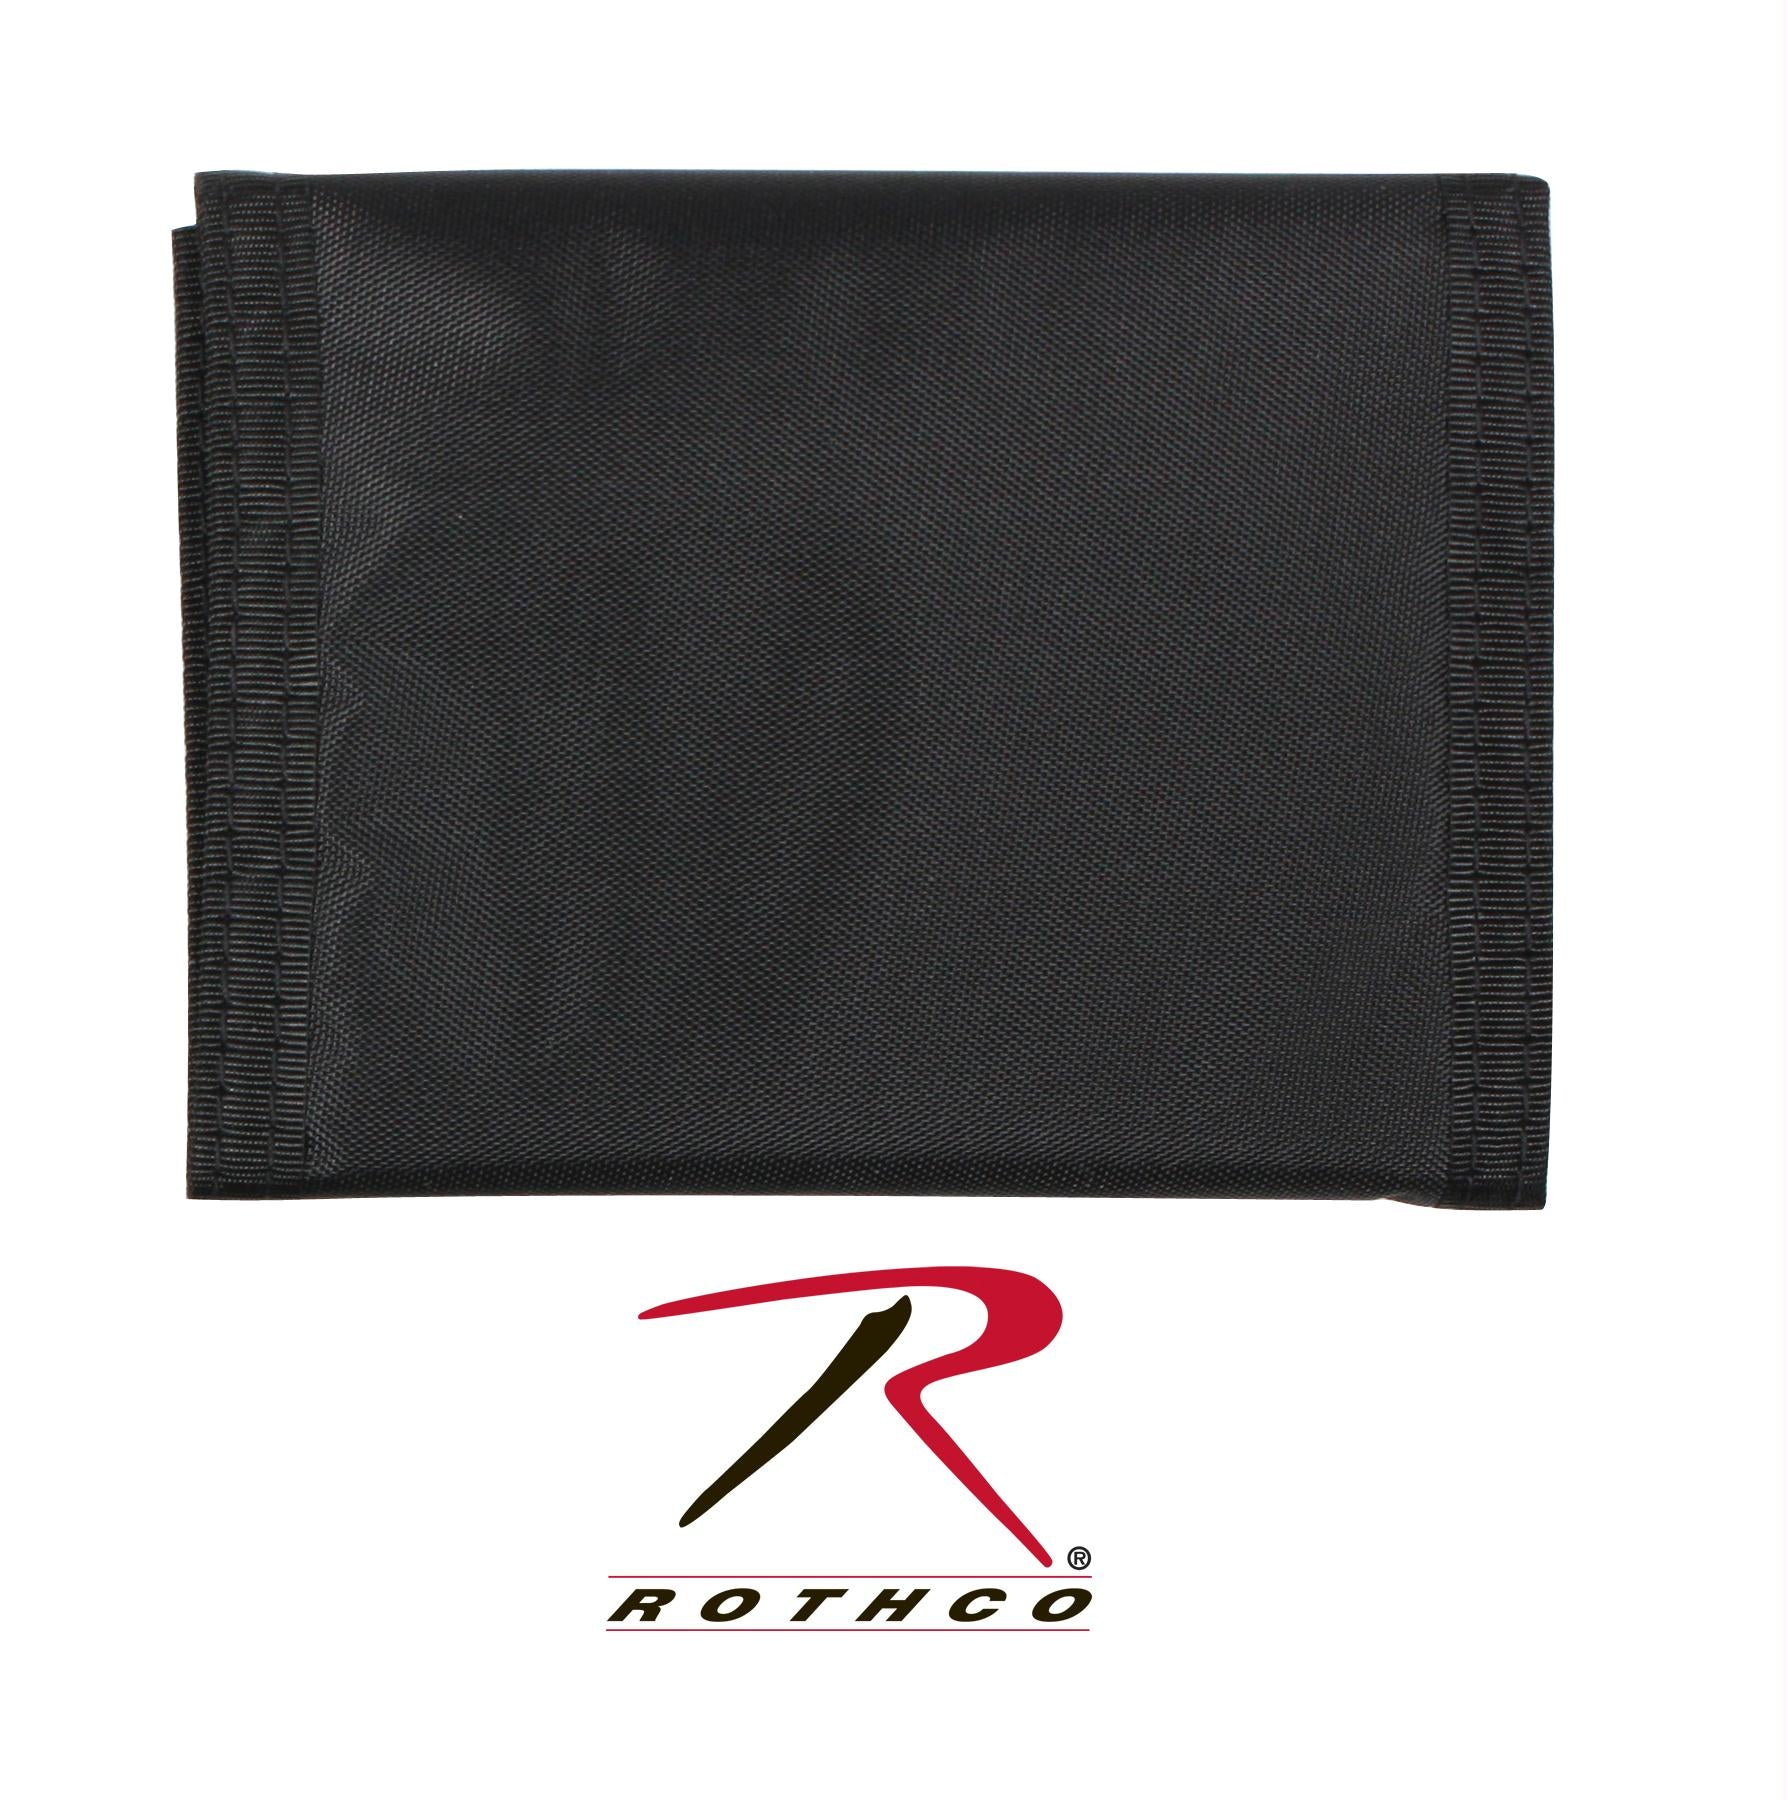 Rothco Commando Wallet - Black